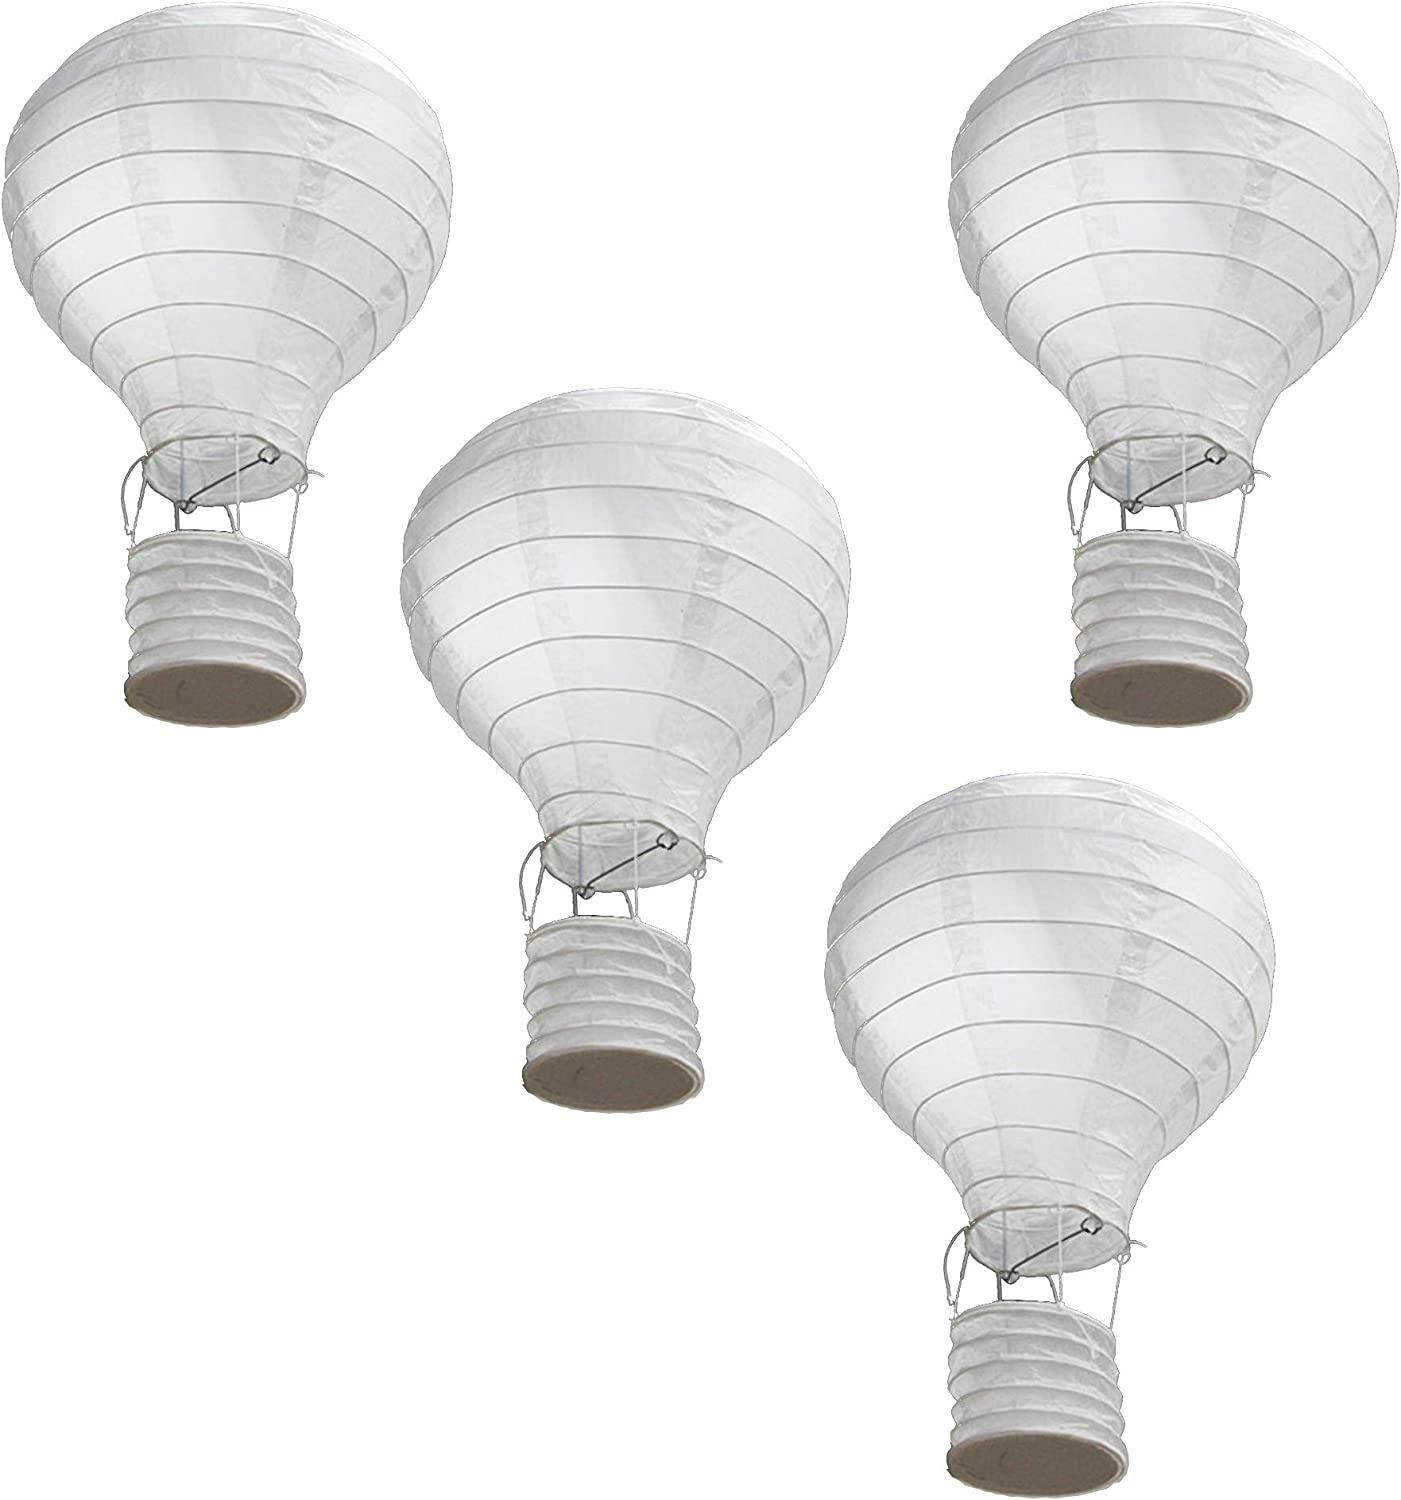 12 Inch Hot Air Balloon Paper Lantern DIY Painting Religion Pattern Ceiling Light Shade 4-Pack Reusable Bedroom Fun Lamp Decor Holiday Wedding Birthday Anniversary Christmas Engagement Decorations